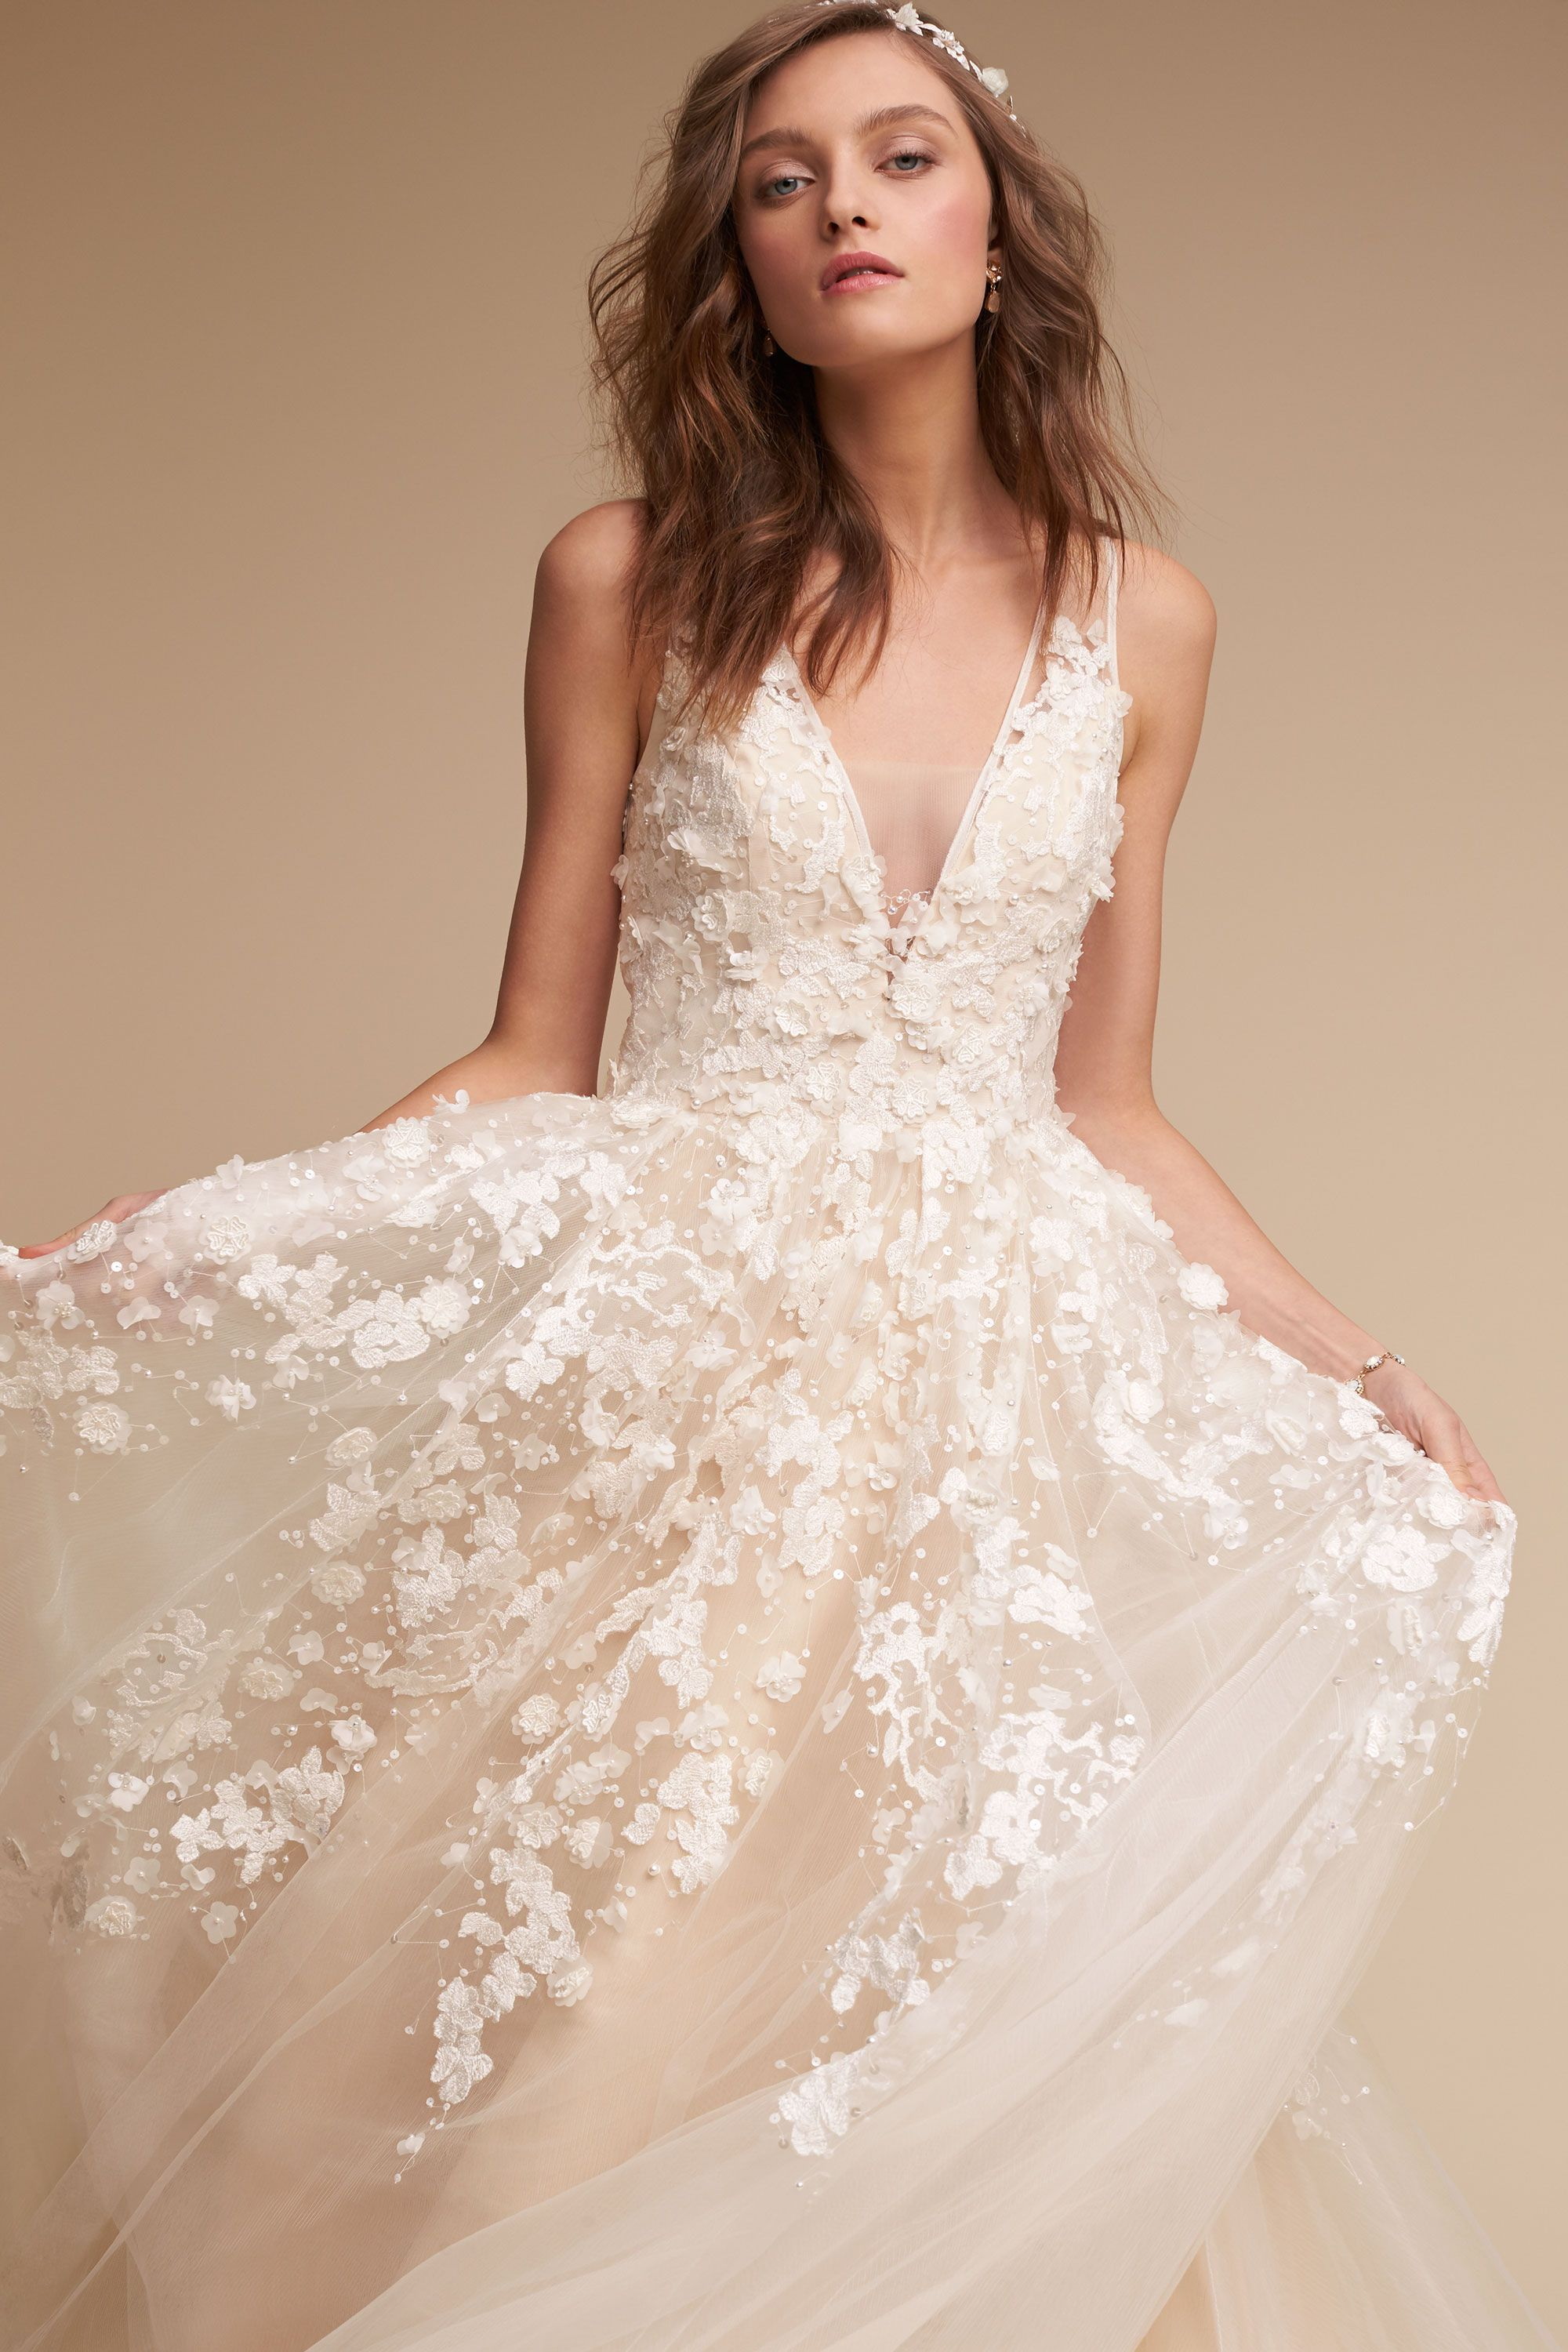 Casual wedding dresses with sleeves  Pin by Savannah Cottrell on The Day that Starts Forever uc